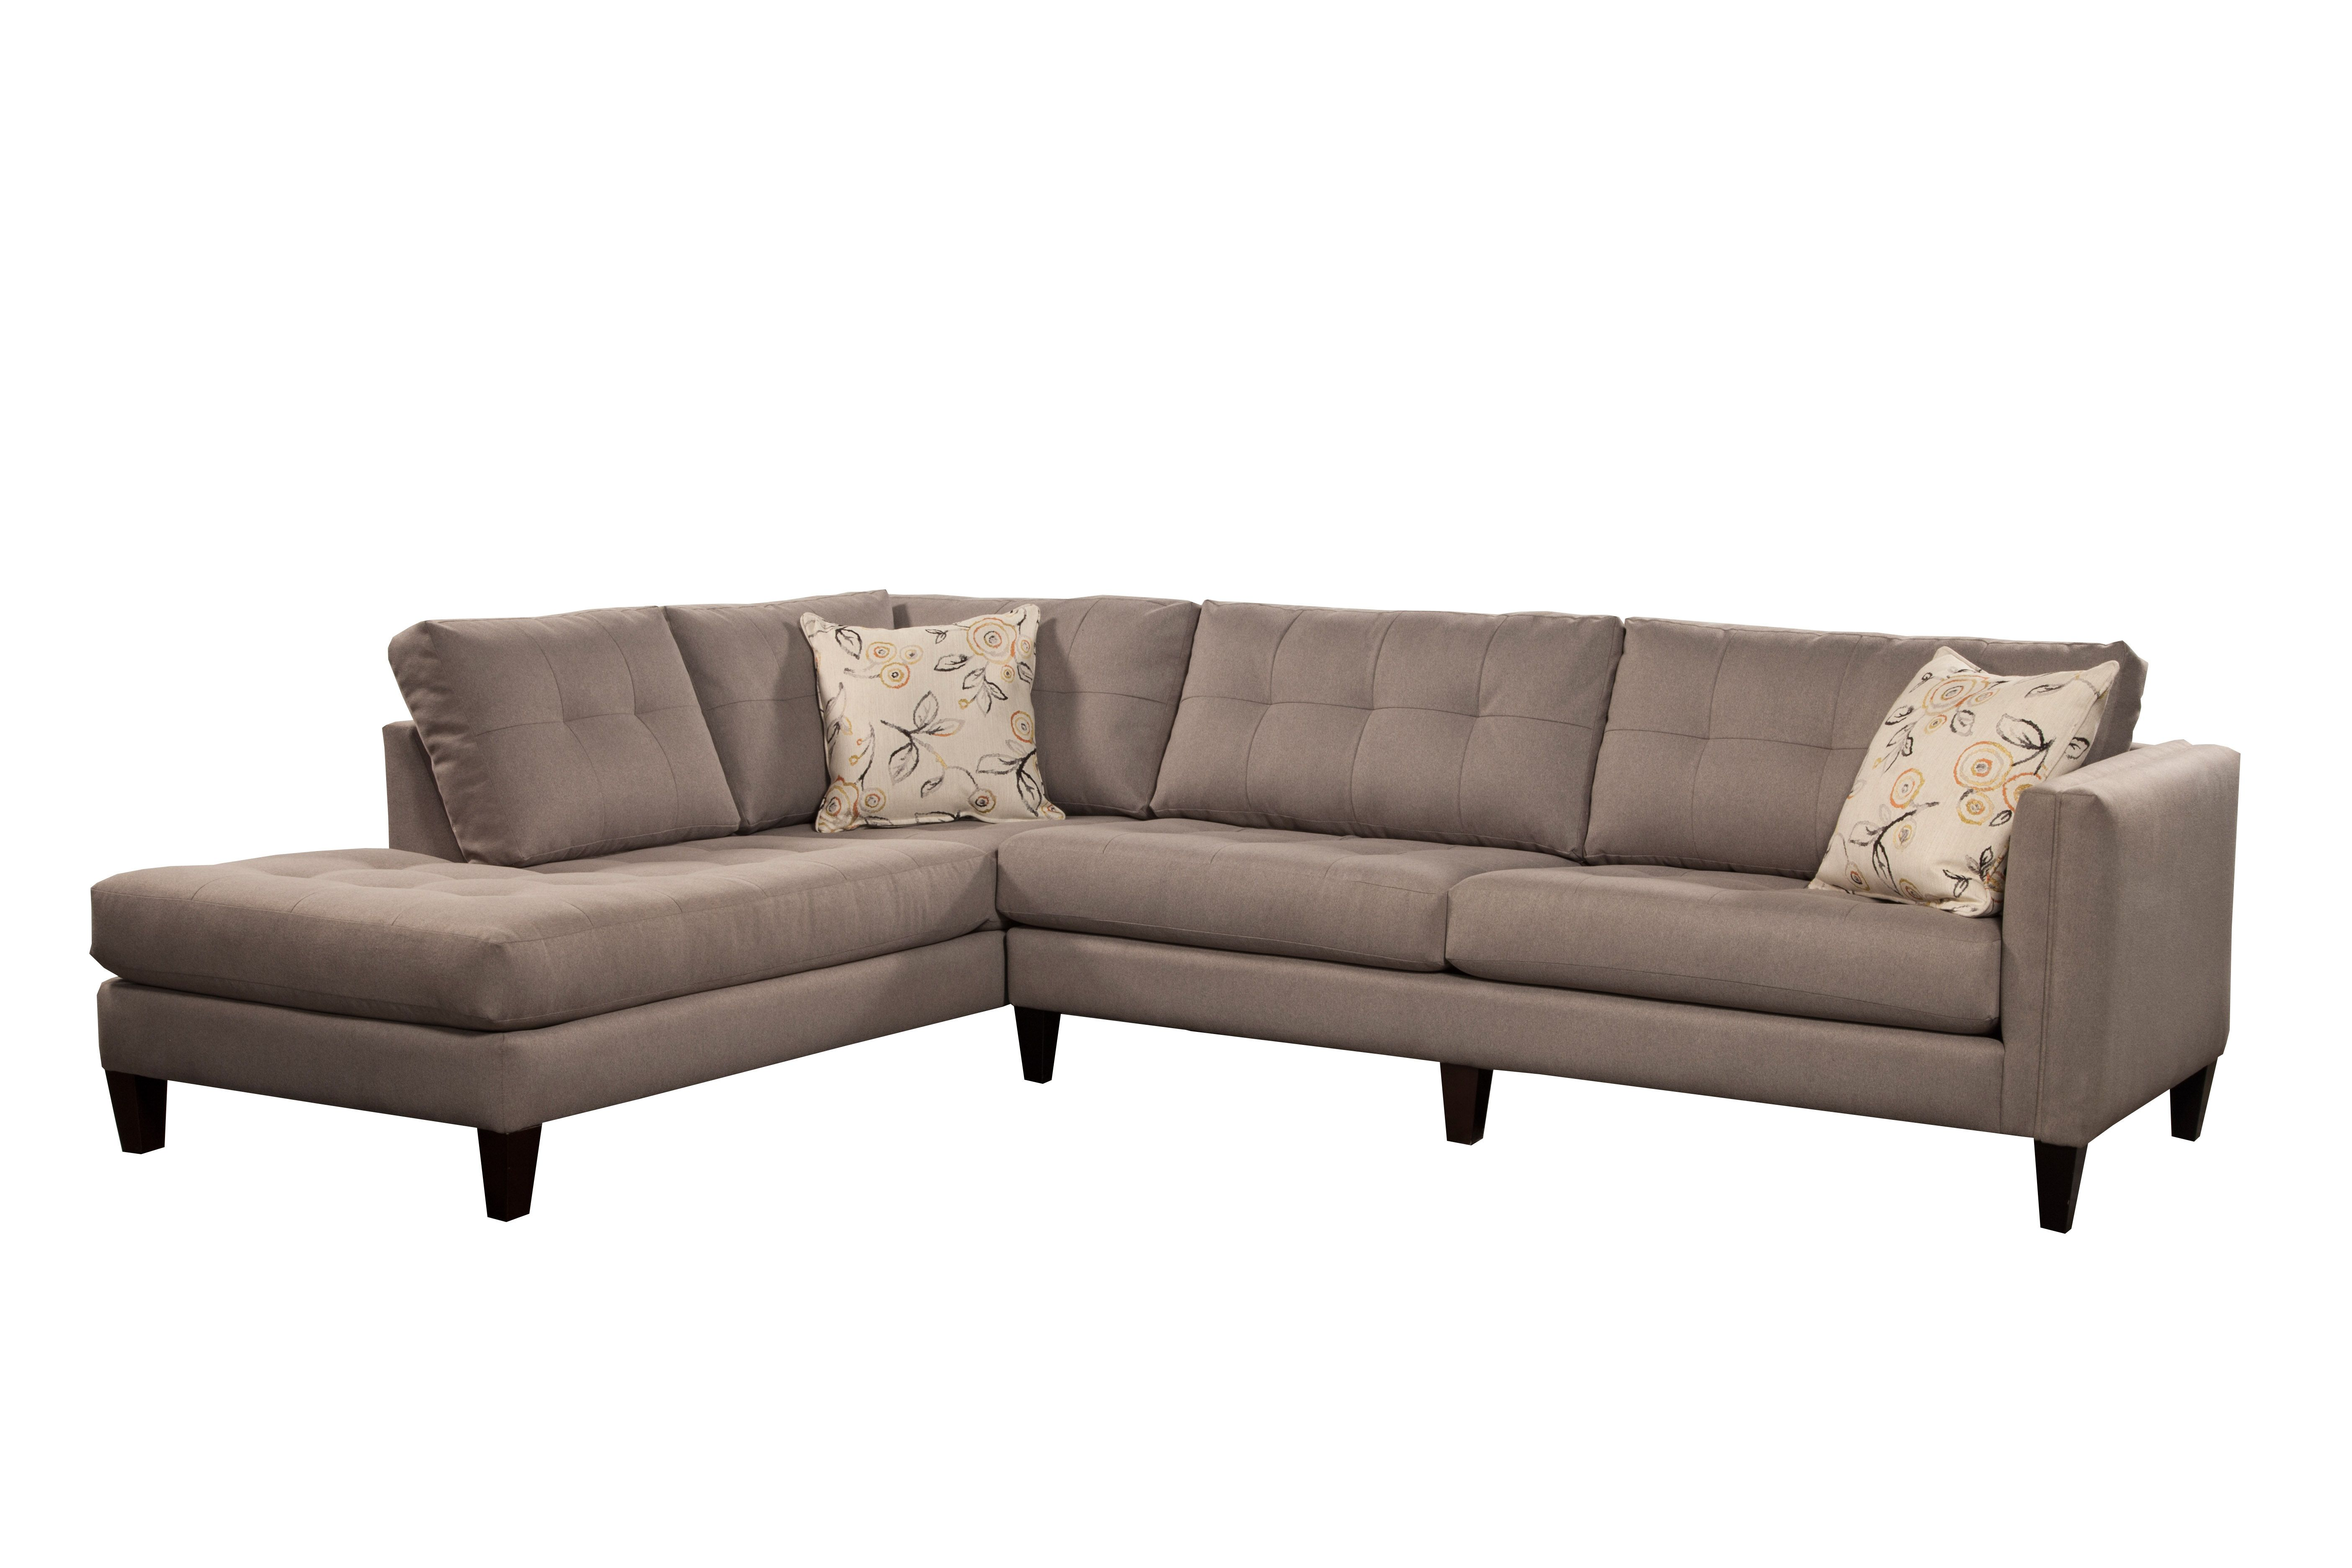 Robert Michael Ltd. Available At Laineyu0027s Furniture For Living, 395 E Monte  Vista Ave, Suite A, Vacaville, CA 95688